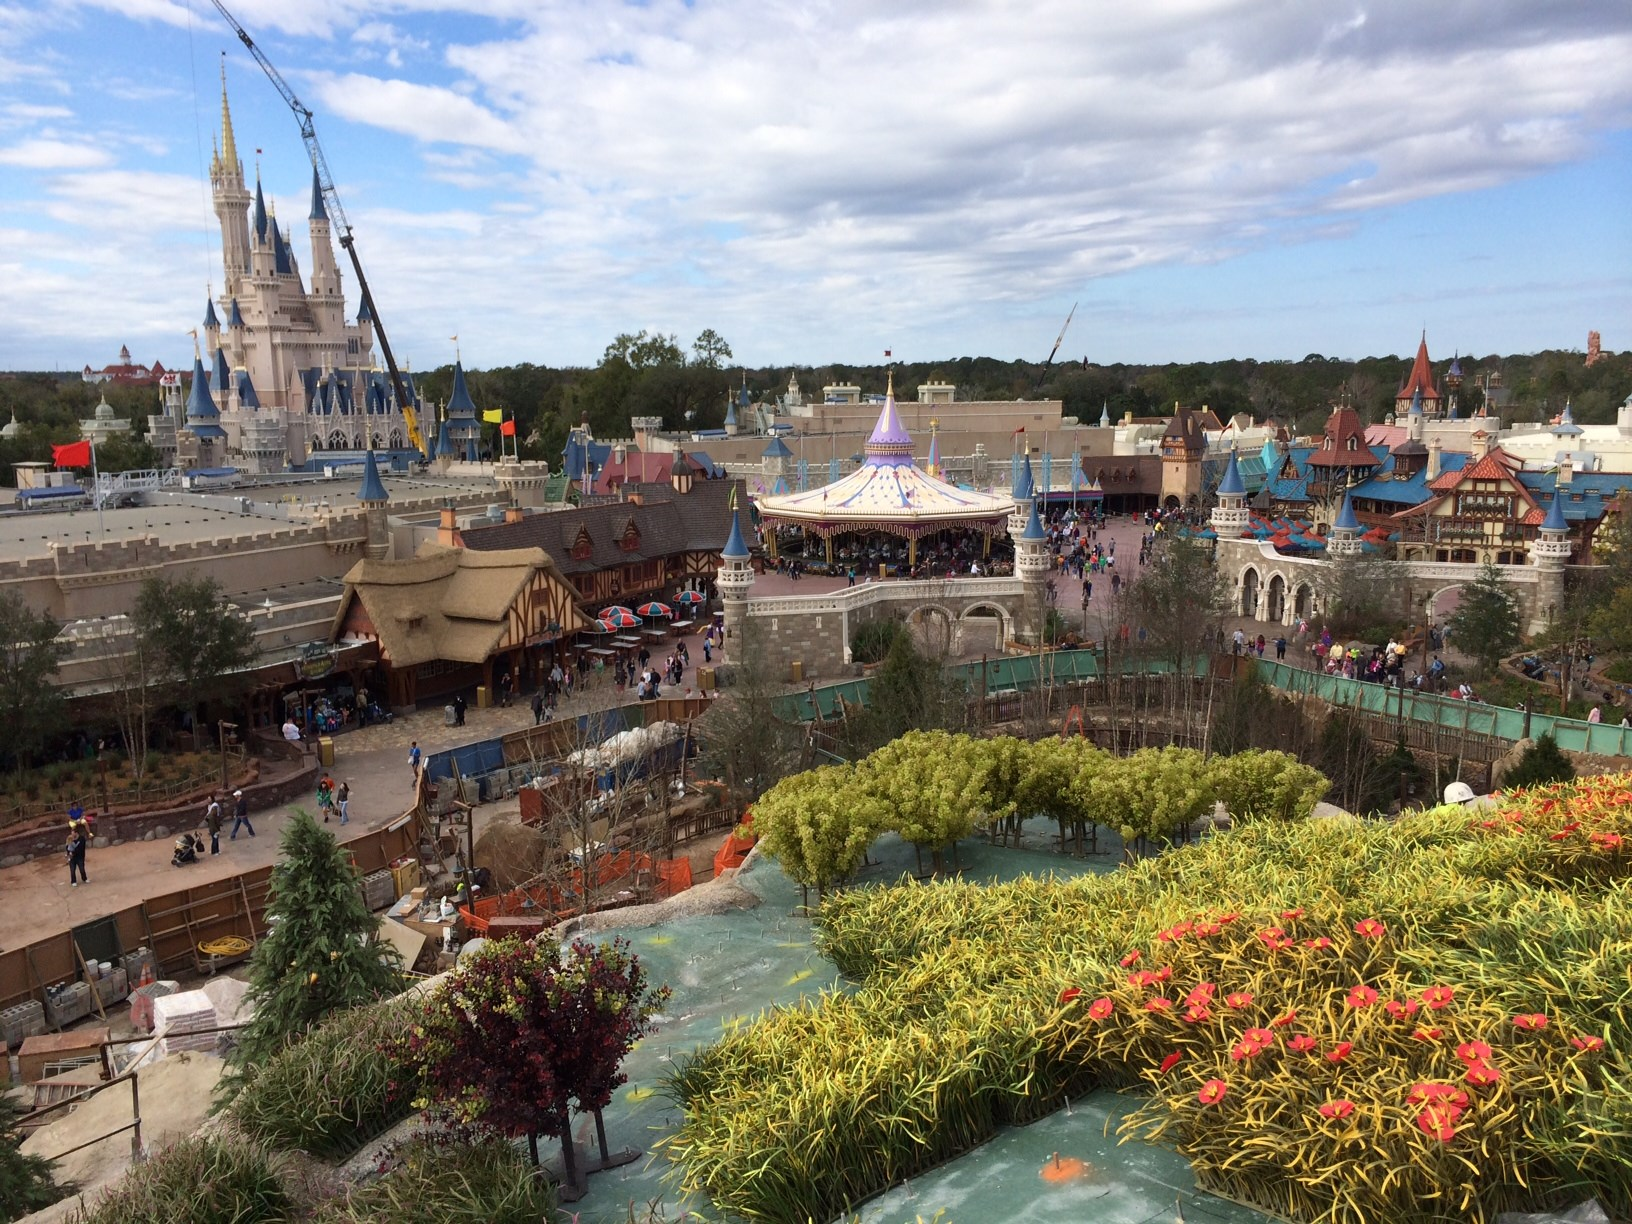 View from the top of the Seven Dwarfs Mine Train